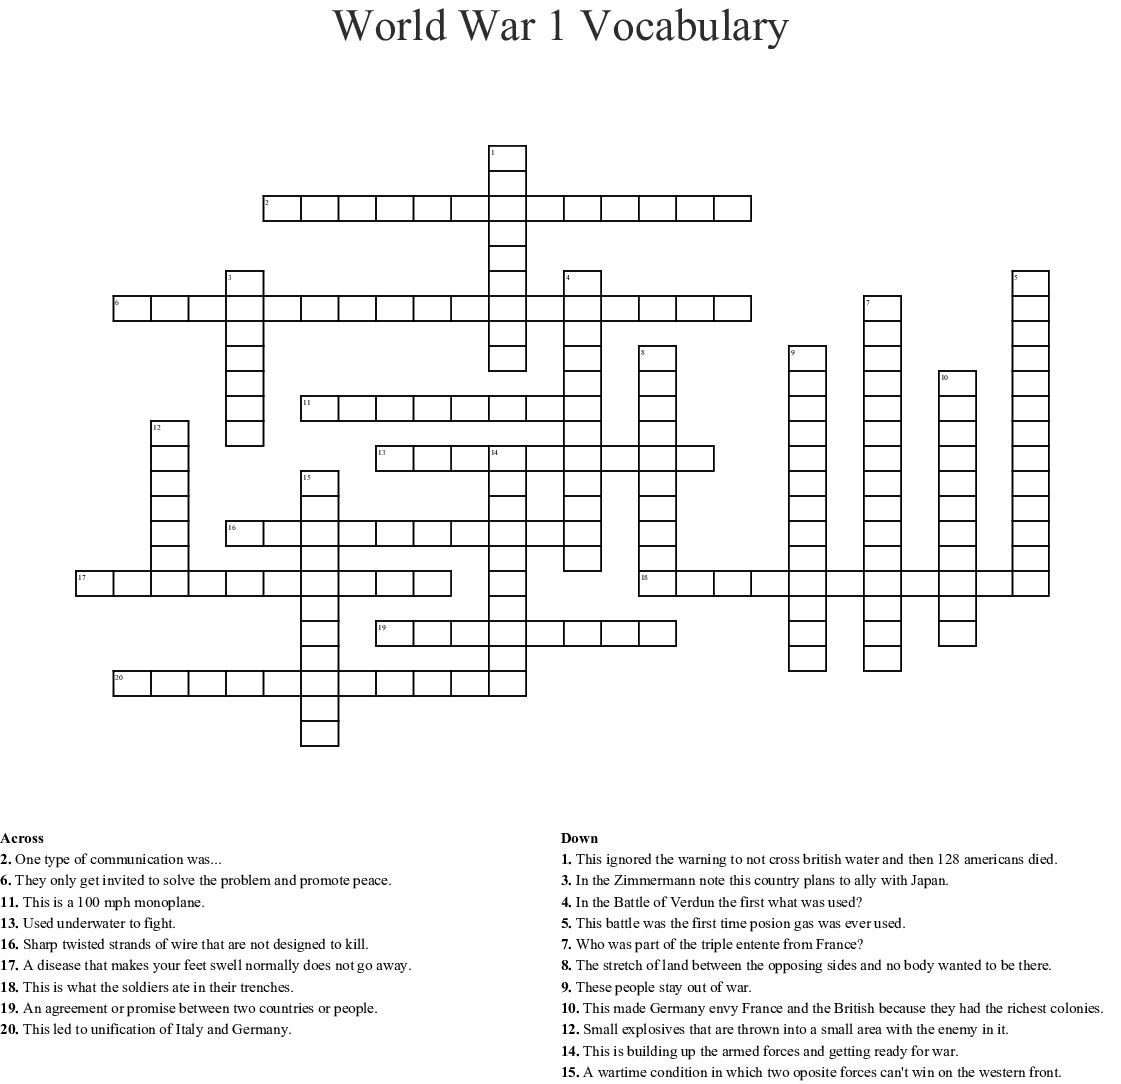 World War 1 Vocabulary Worksheet